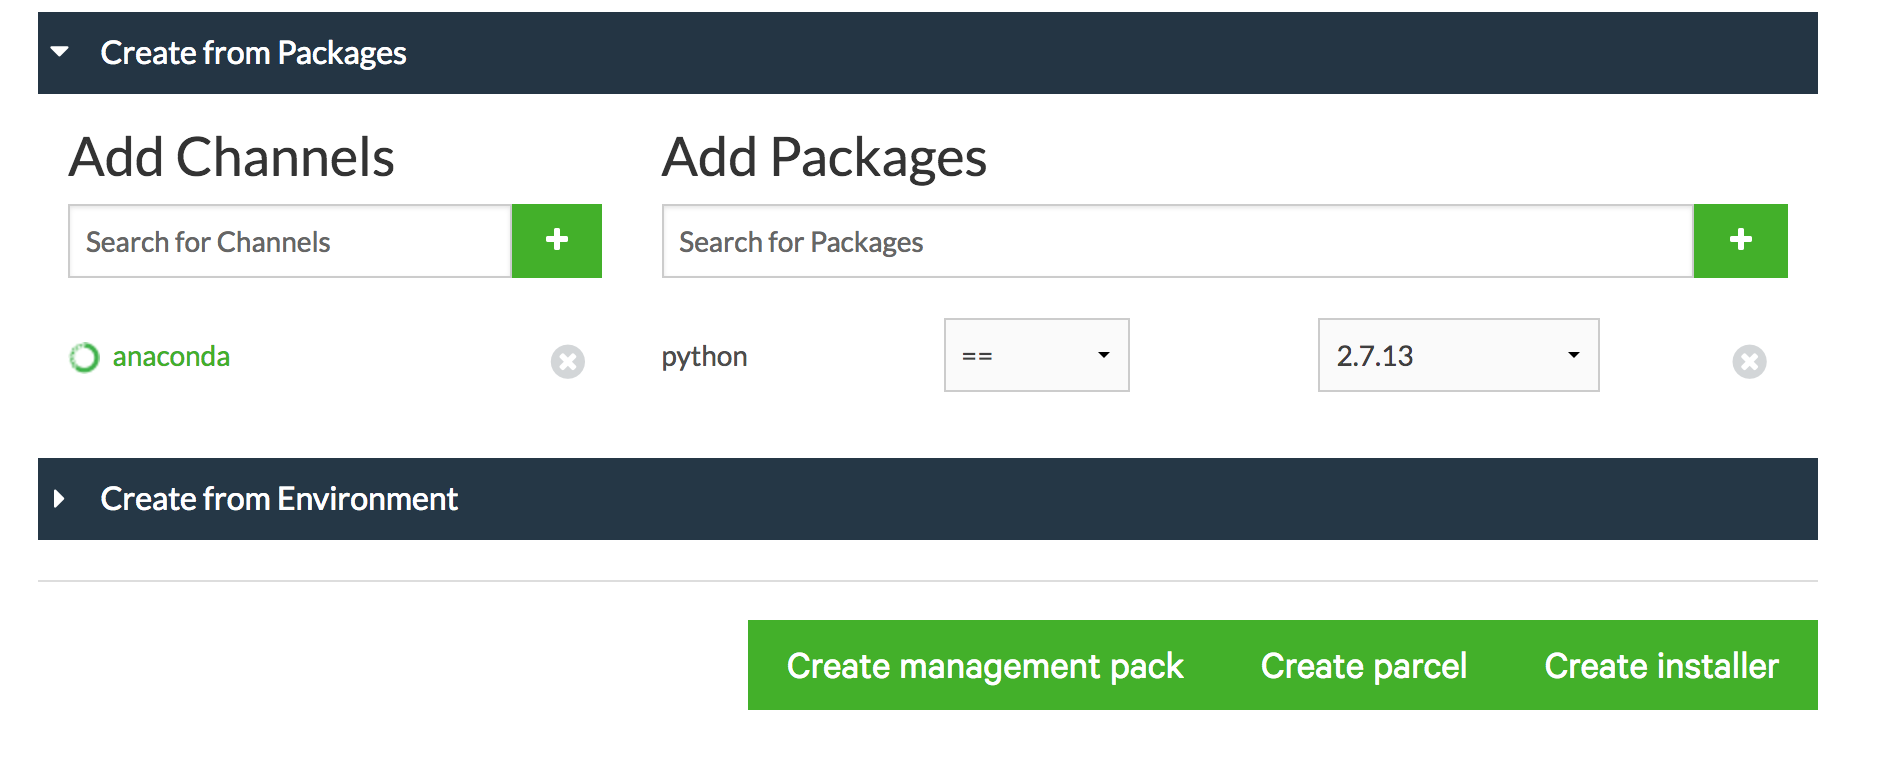 ../../../../_images/repo-parcels-create-installer.png